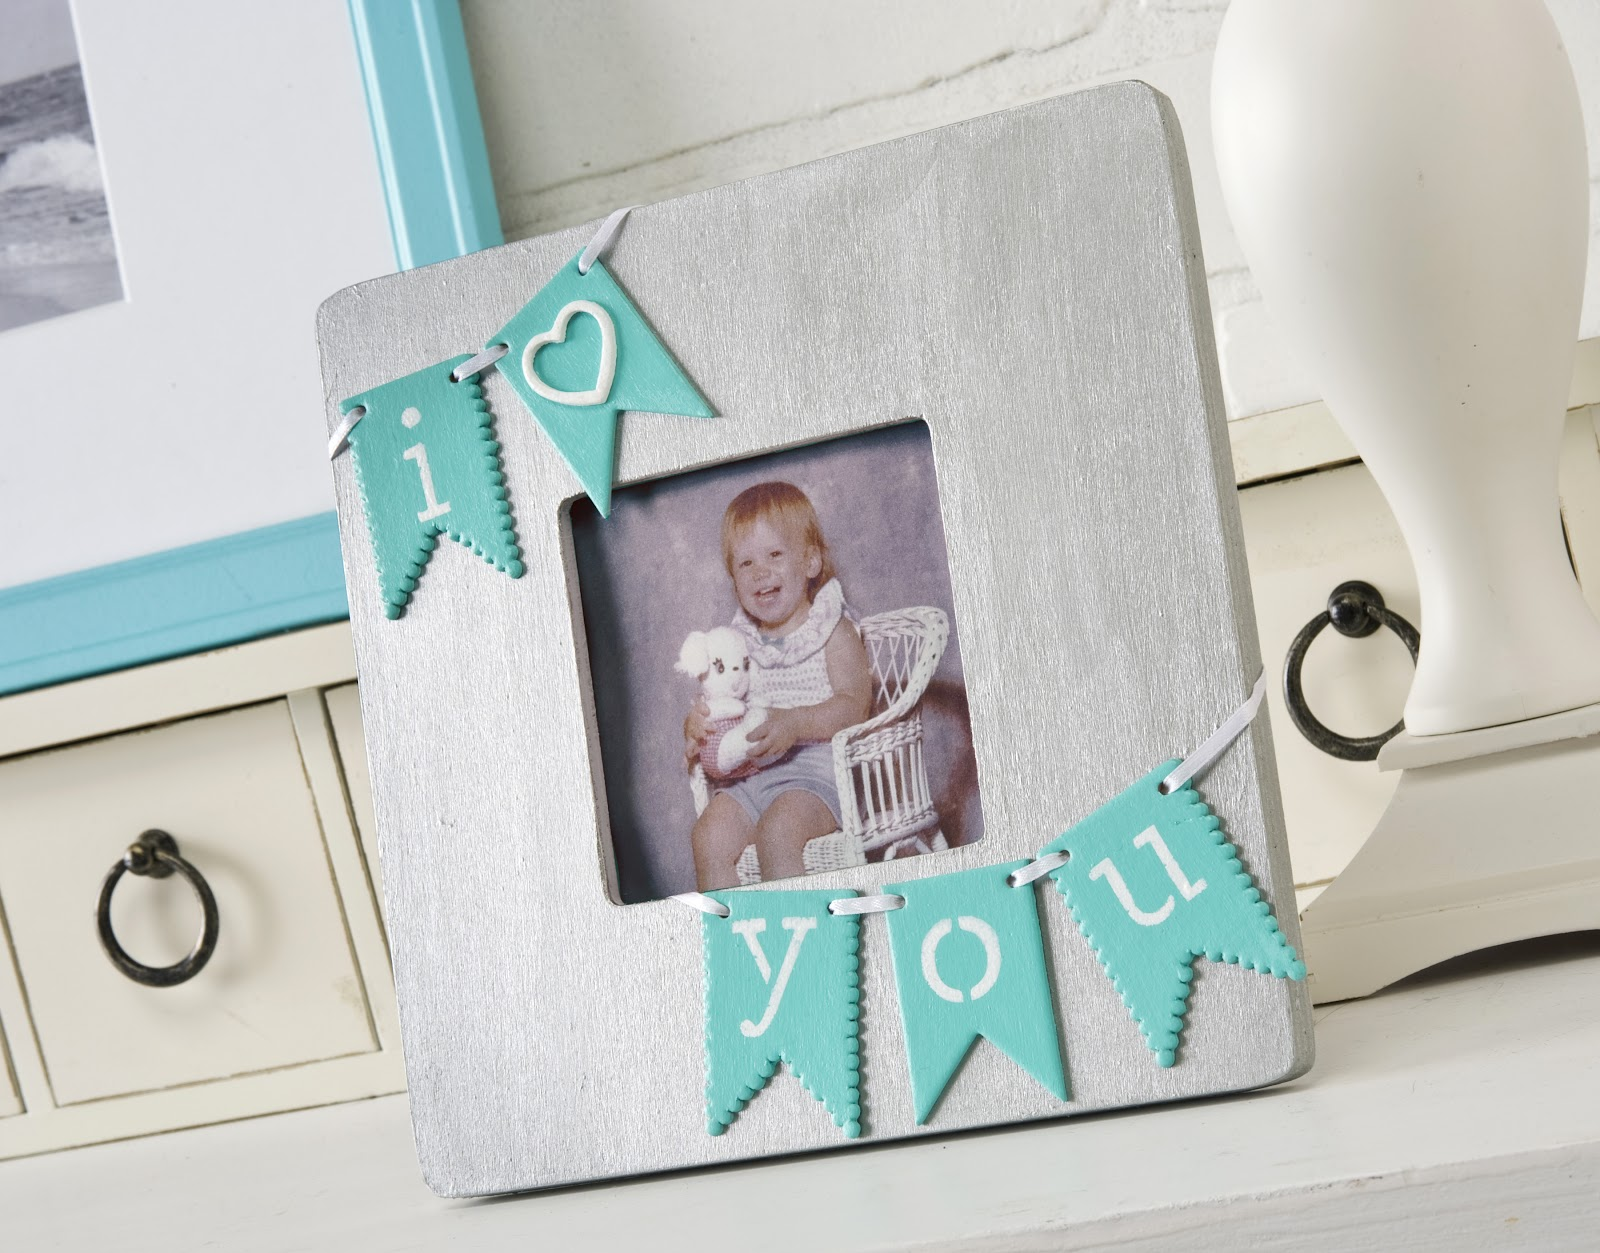 I Heart You Diy Picture Frame Mod Podge Rocks